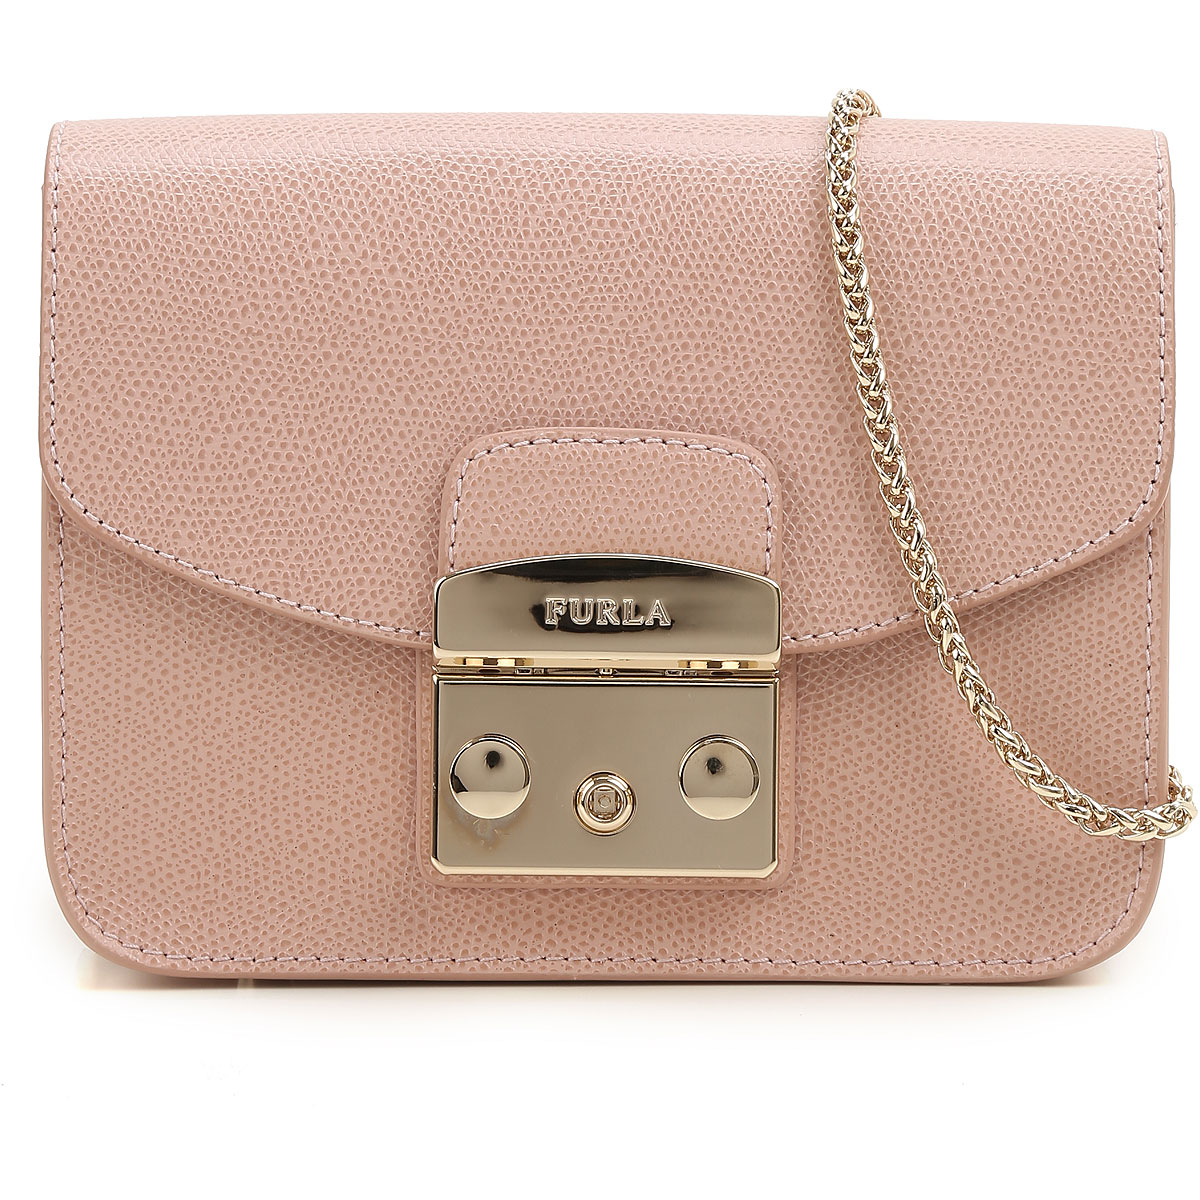 fd6158349e8b ... Furla Handbags. FULL SCREEN. 1) Drag to view product 2) Double click to  start rotation